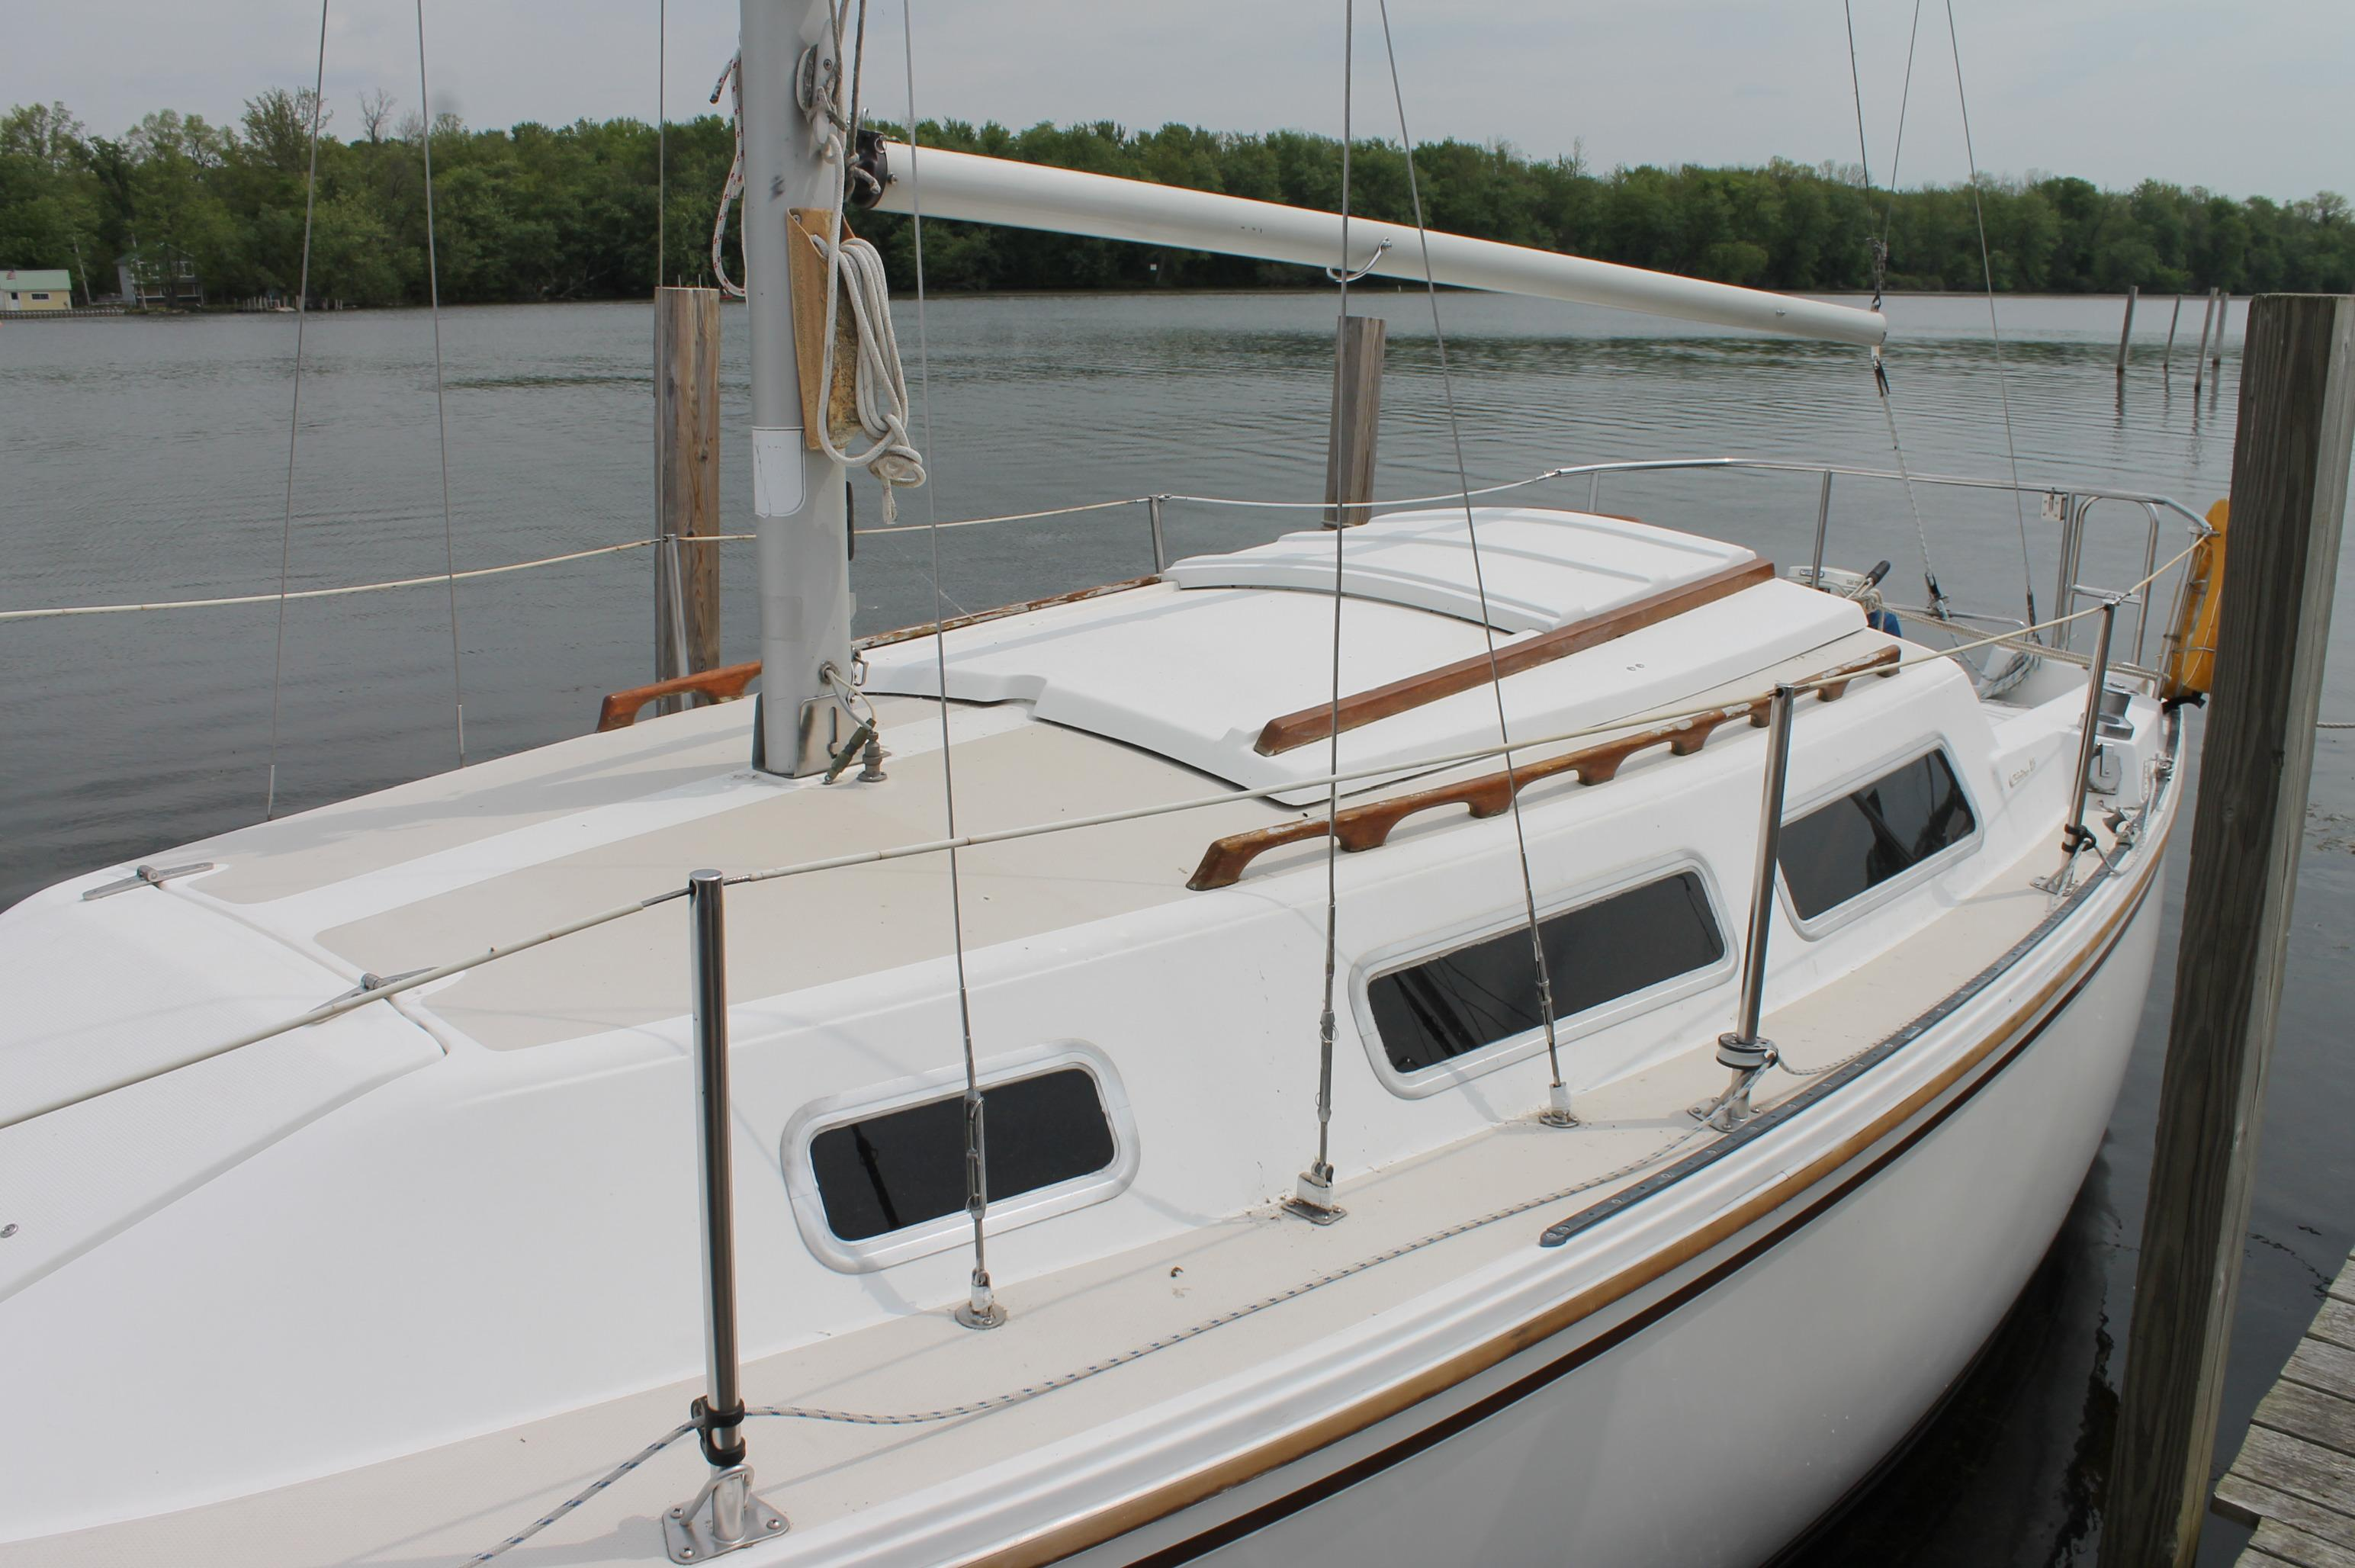 1984 Catalina 25 ft sailboat for sale in Idaho